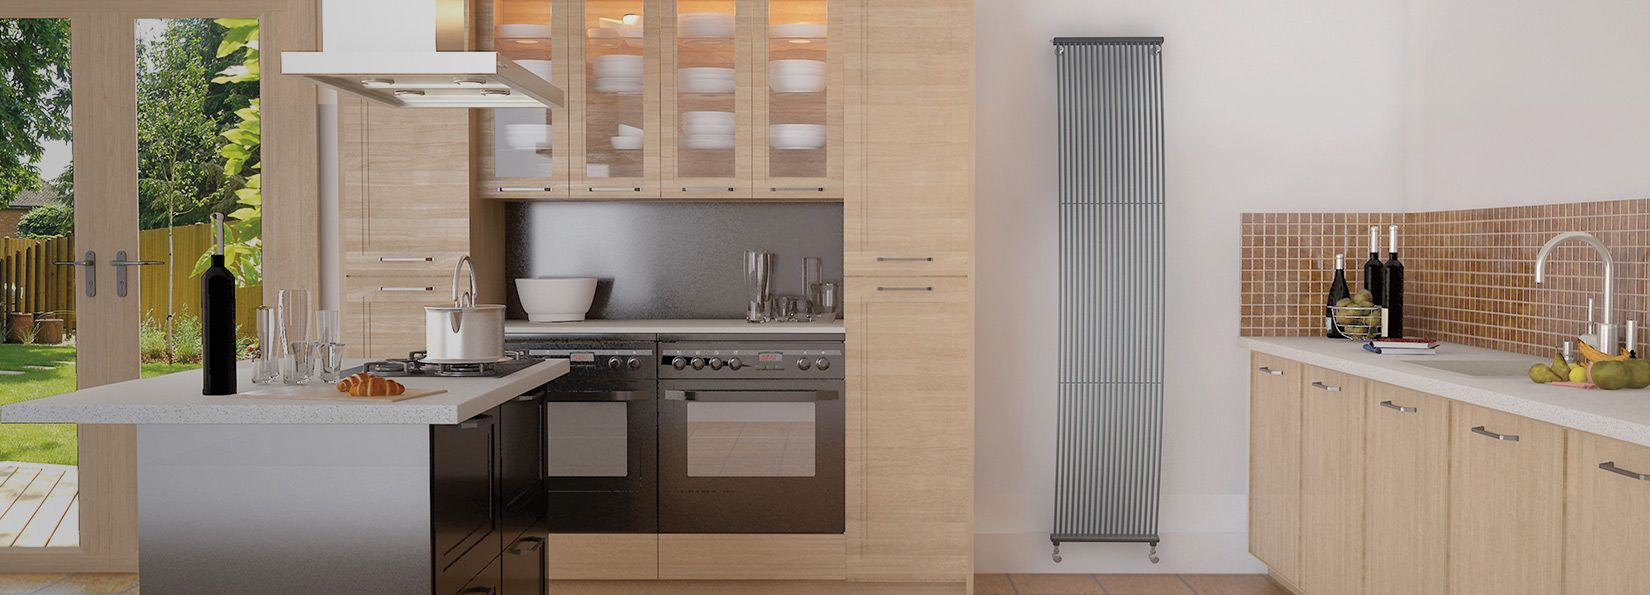 Vertical radiator in kitchen google search kitchens - Designer vertical radiators for kitchens ...